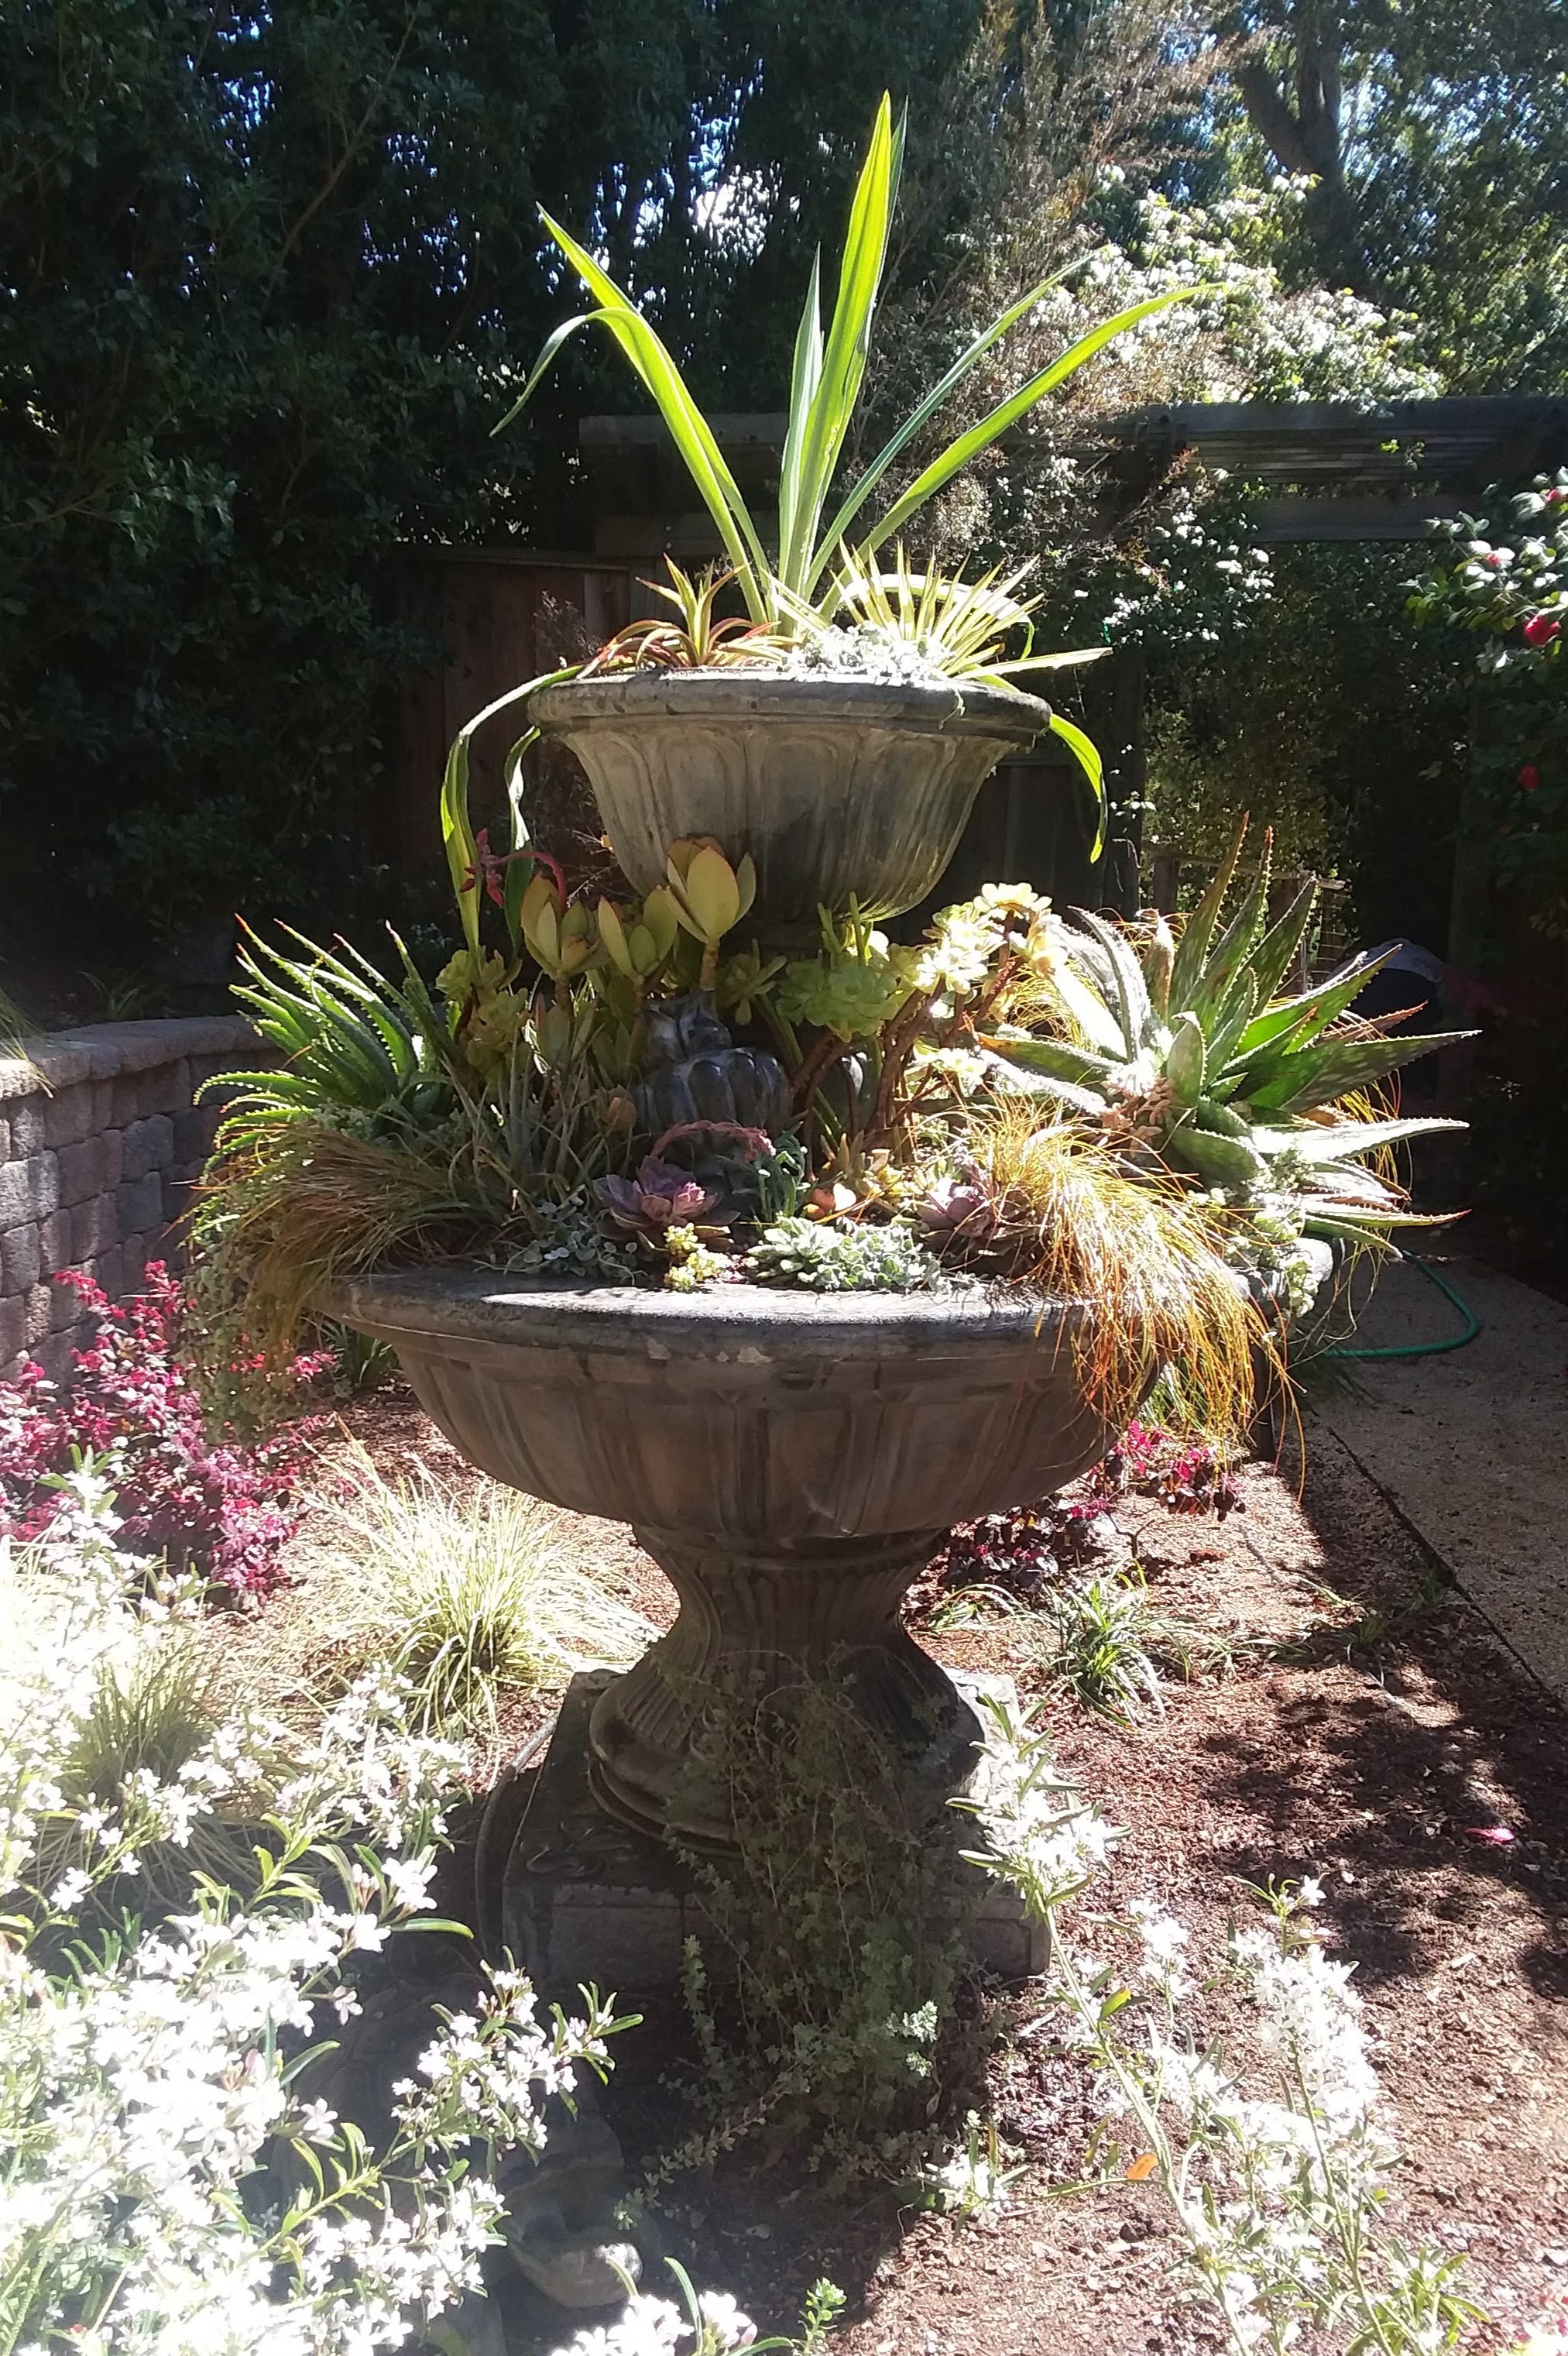 Amason's succulent fountain on Tues., April 9, 2019-2.jpg